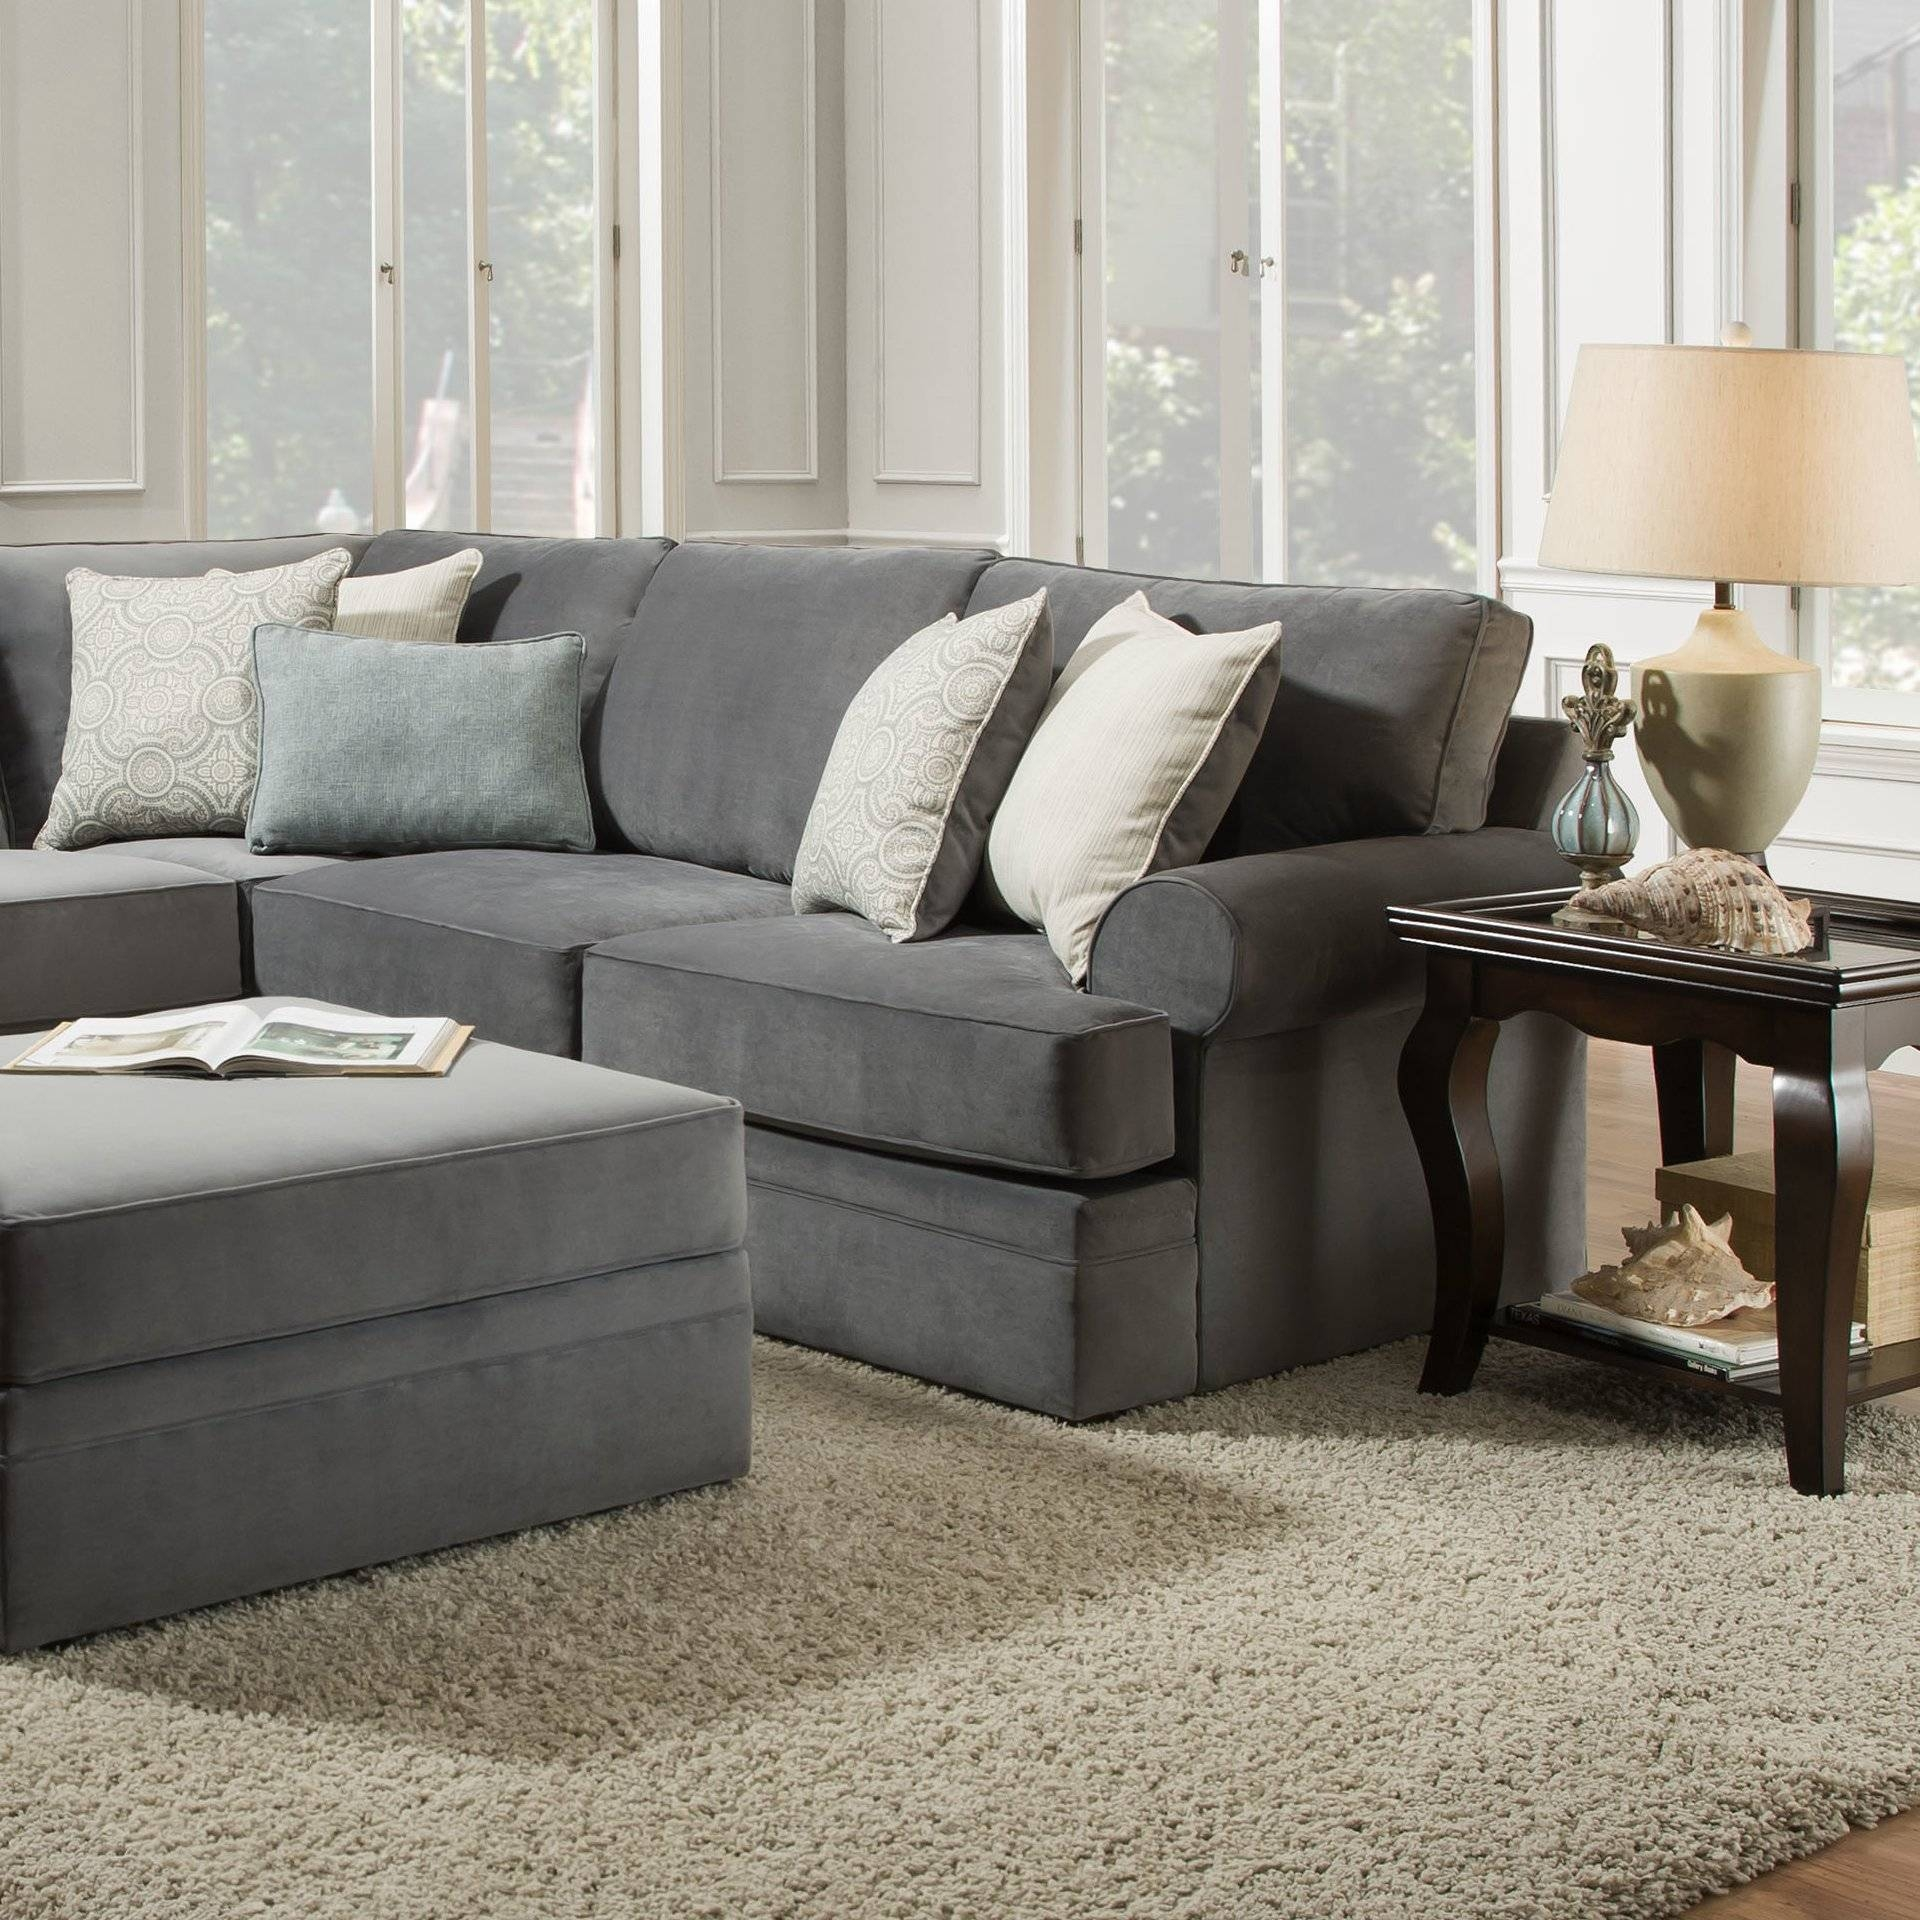 Sectional Sofas At Big Lots: 15 Best Big Lots Simmons Sectional Sofas